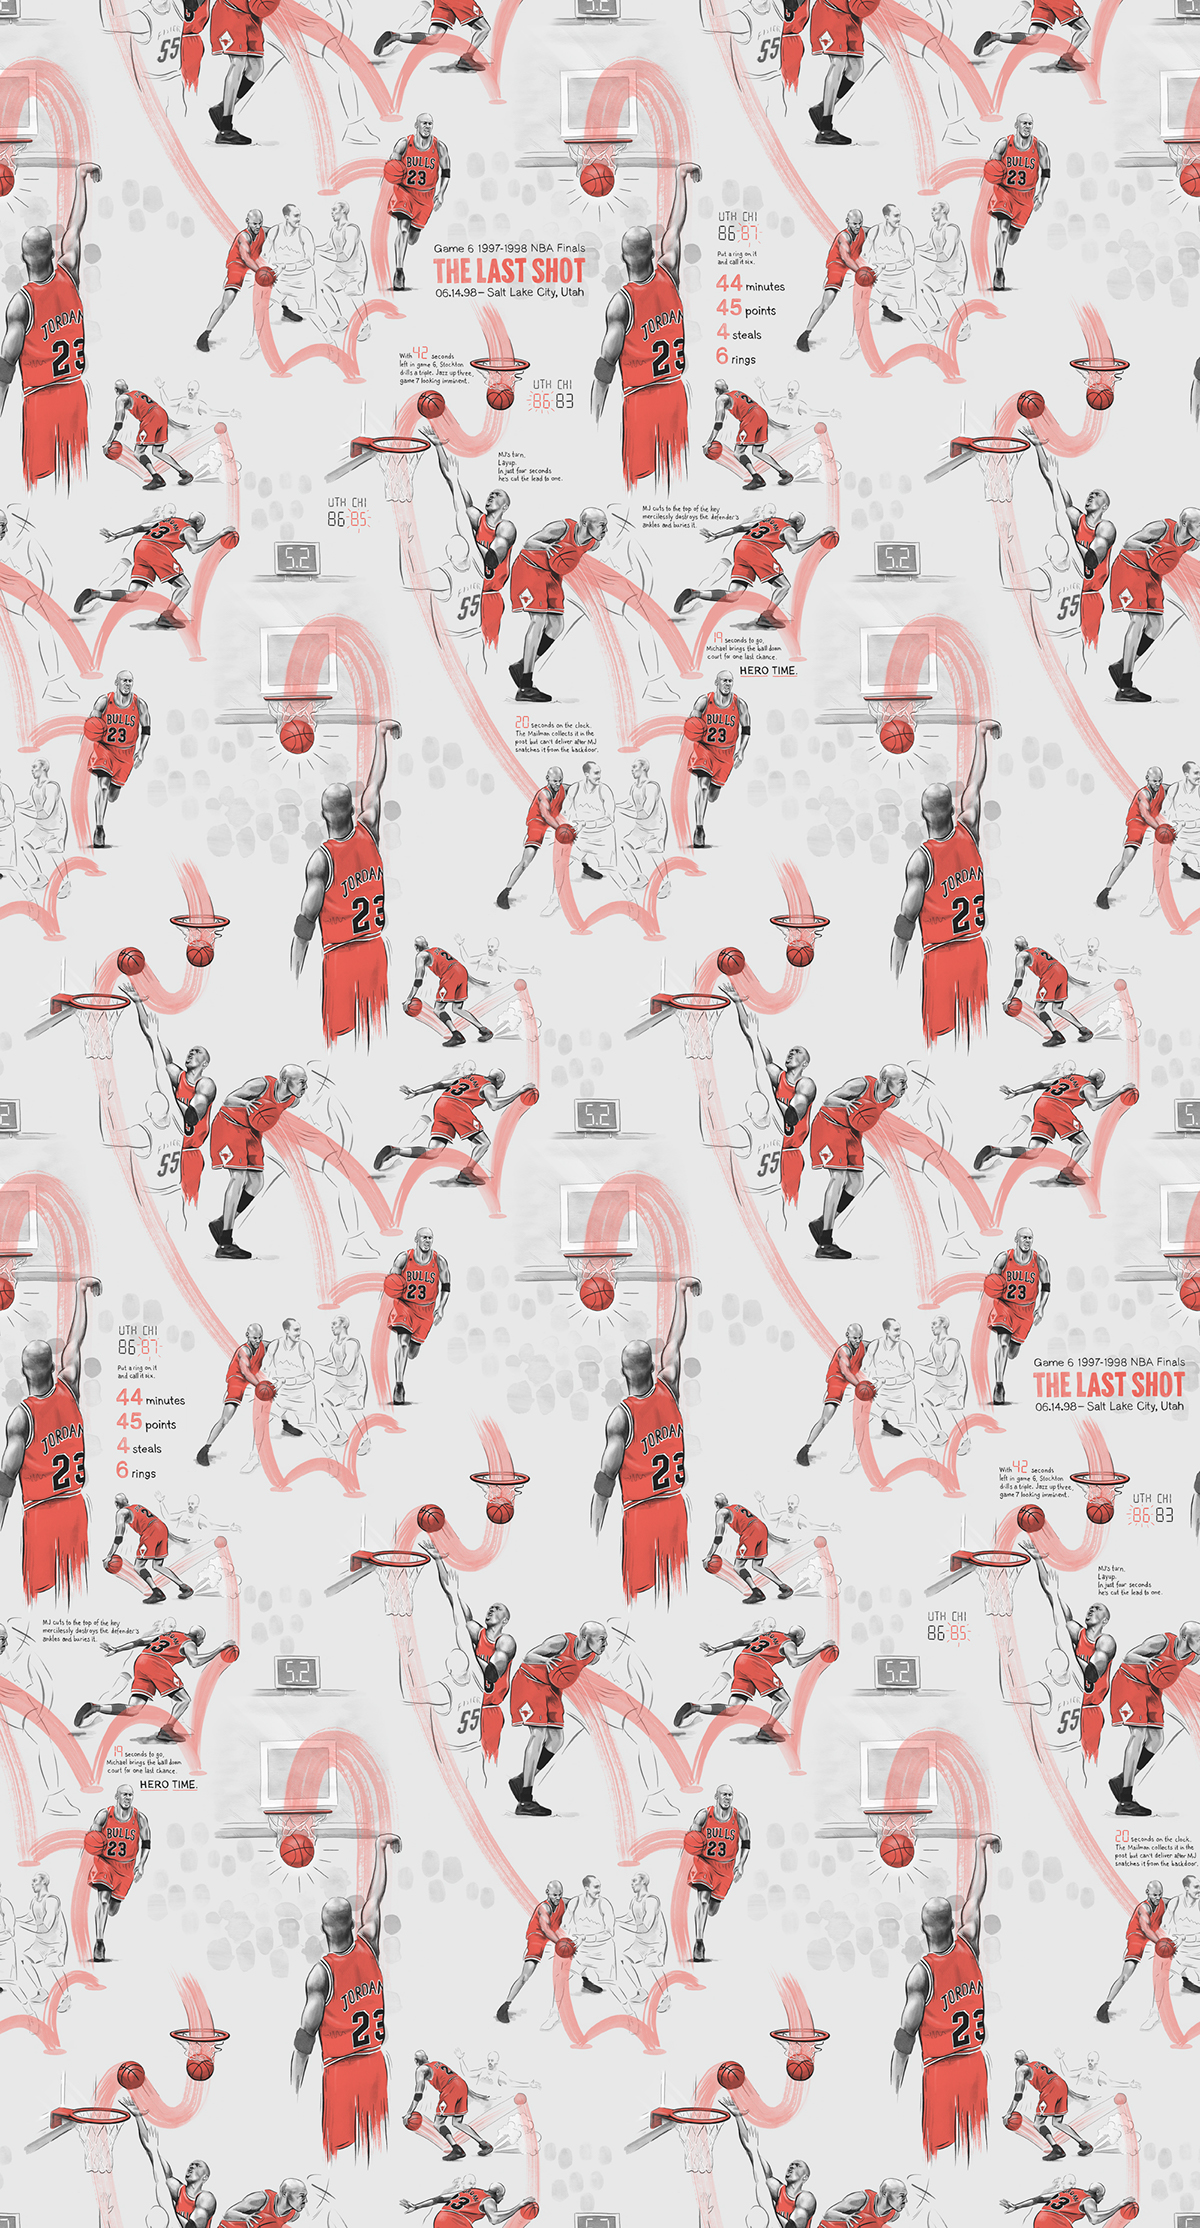 Michael Jordan Last Shot and Flu Game Wallpaper